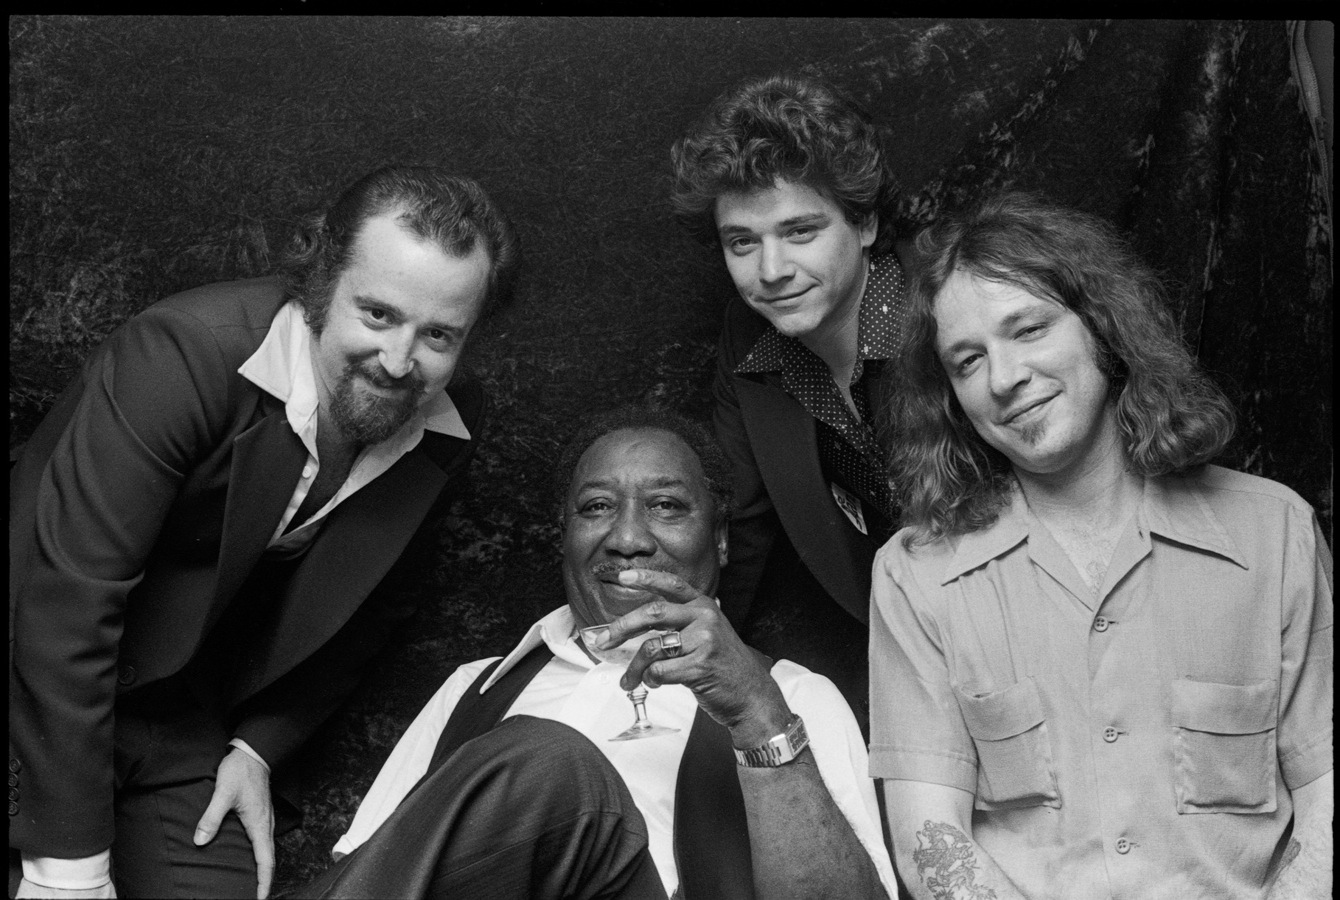 Muddy Waters & the Fabulous Thunderbirds (Austin, TX).